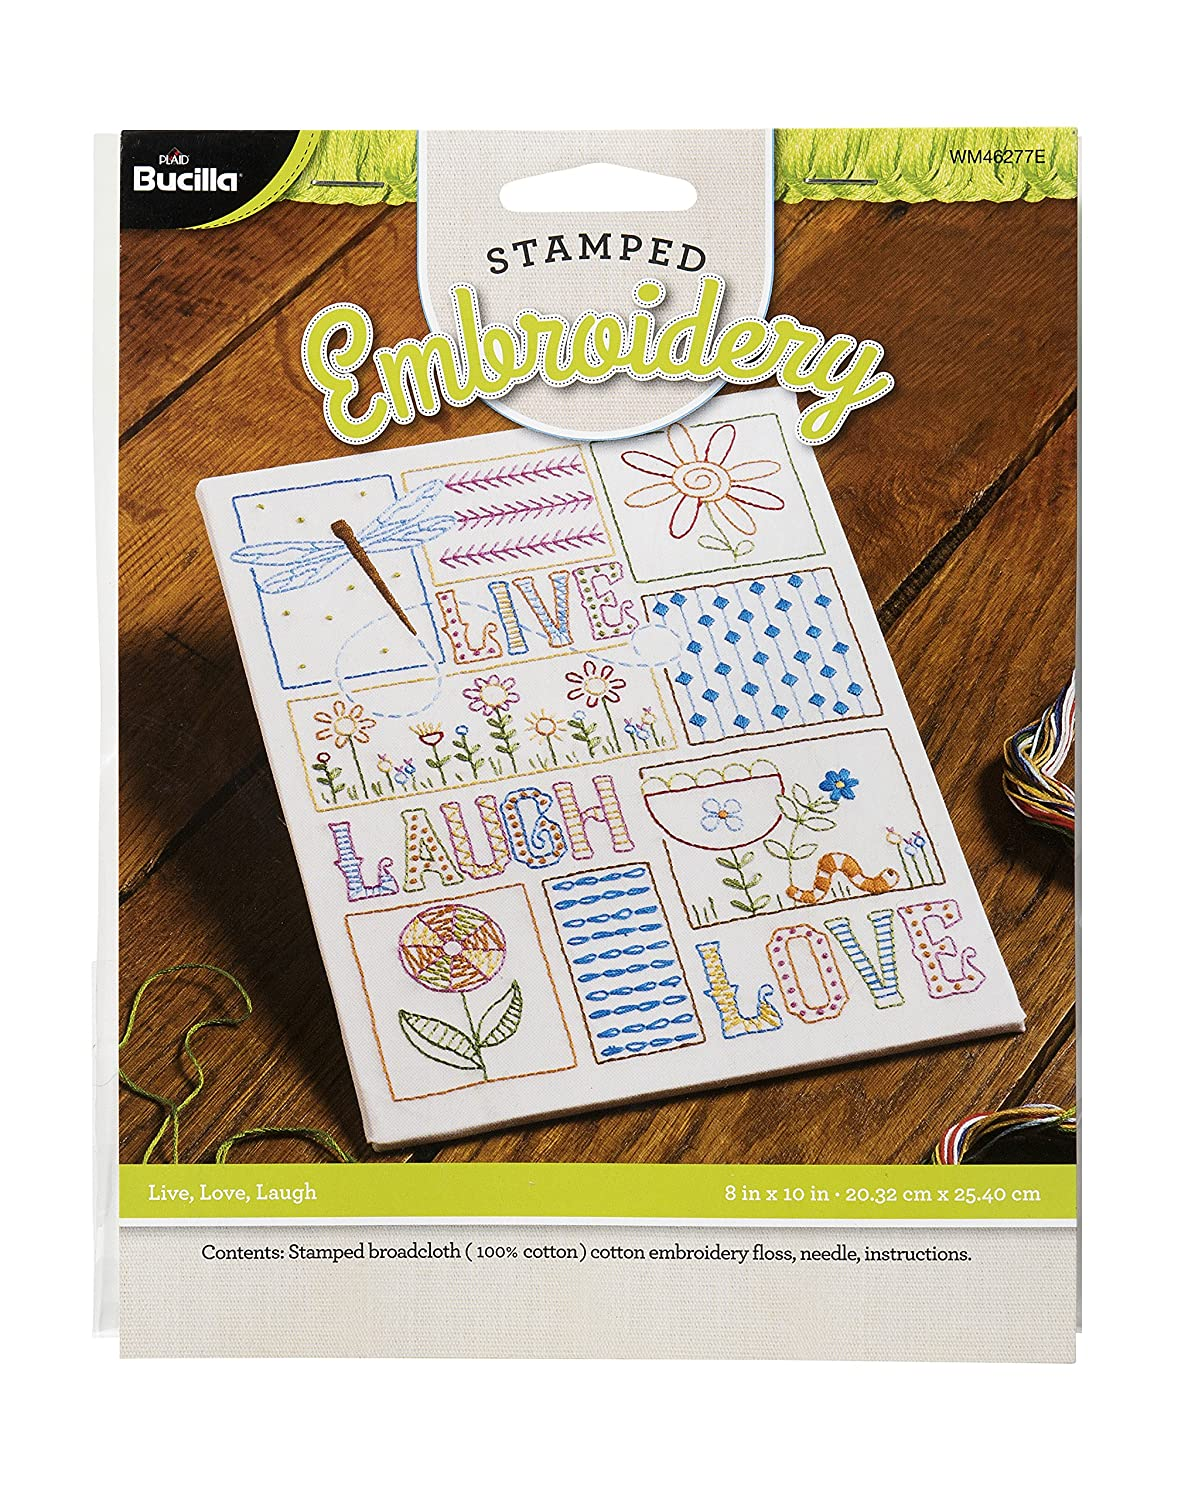 Bucilla Stamped Embroidery Plaid Enterprises WM46277E